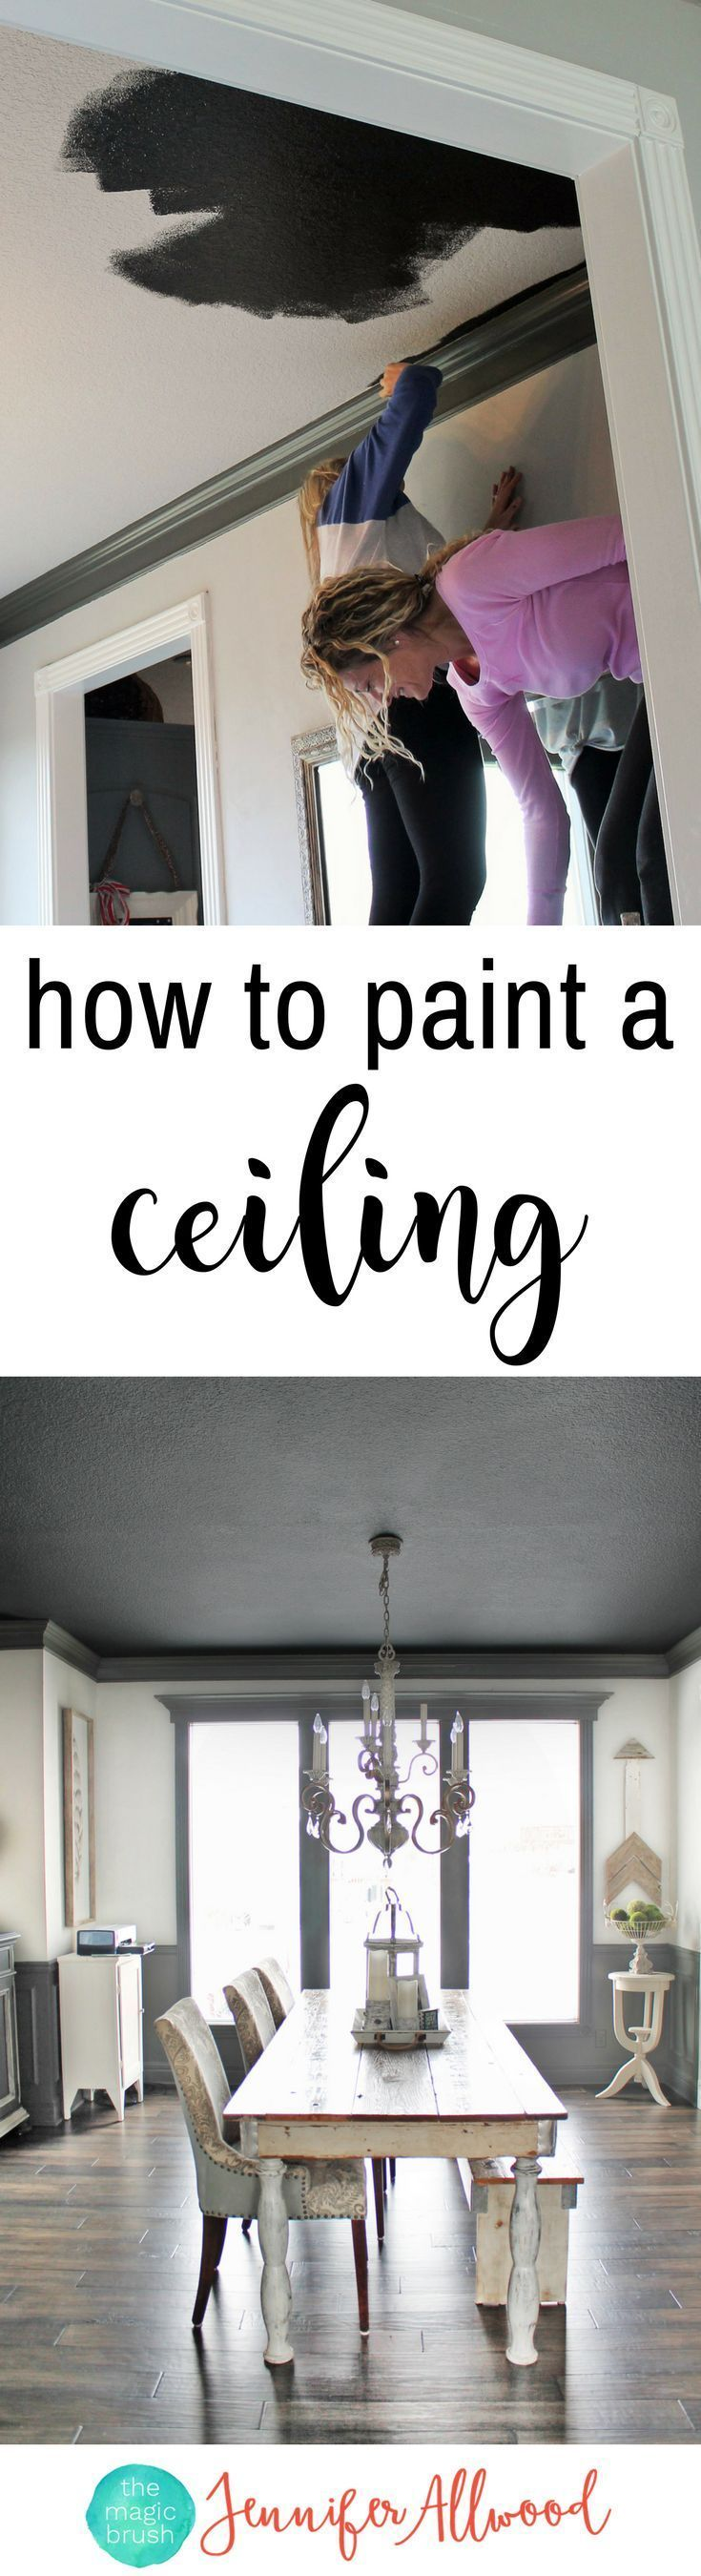 Ideas : How to paint a ceiling ... black! Painted Black Ceiling in the Dining Room | Ceiling Painting Tips | Magic Brush | Painted Ceiling Ideas | Tricorn Black Sherwin Williams